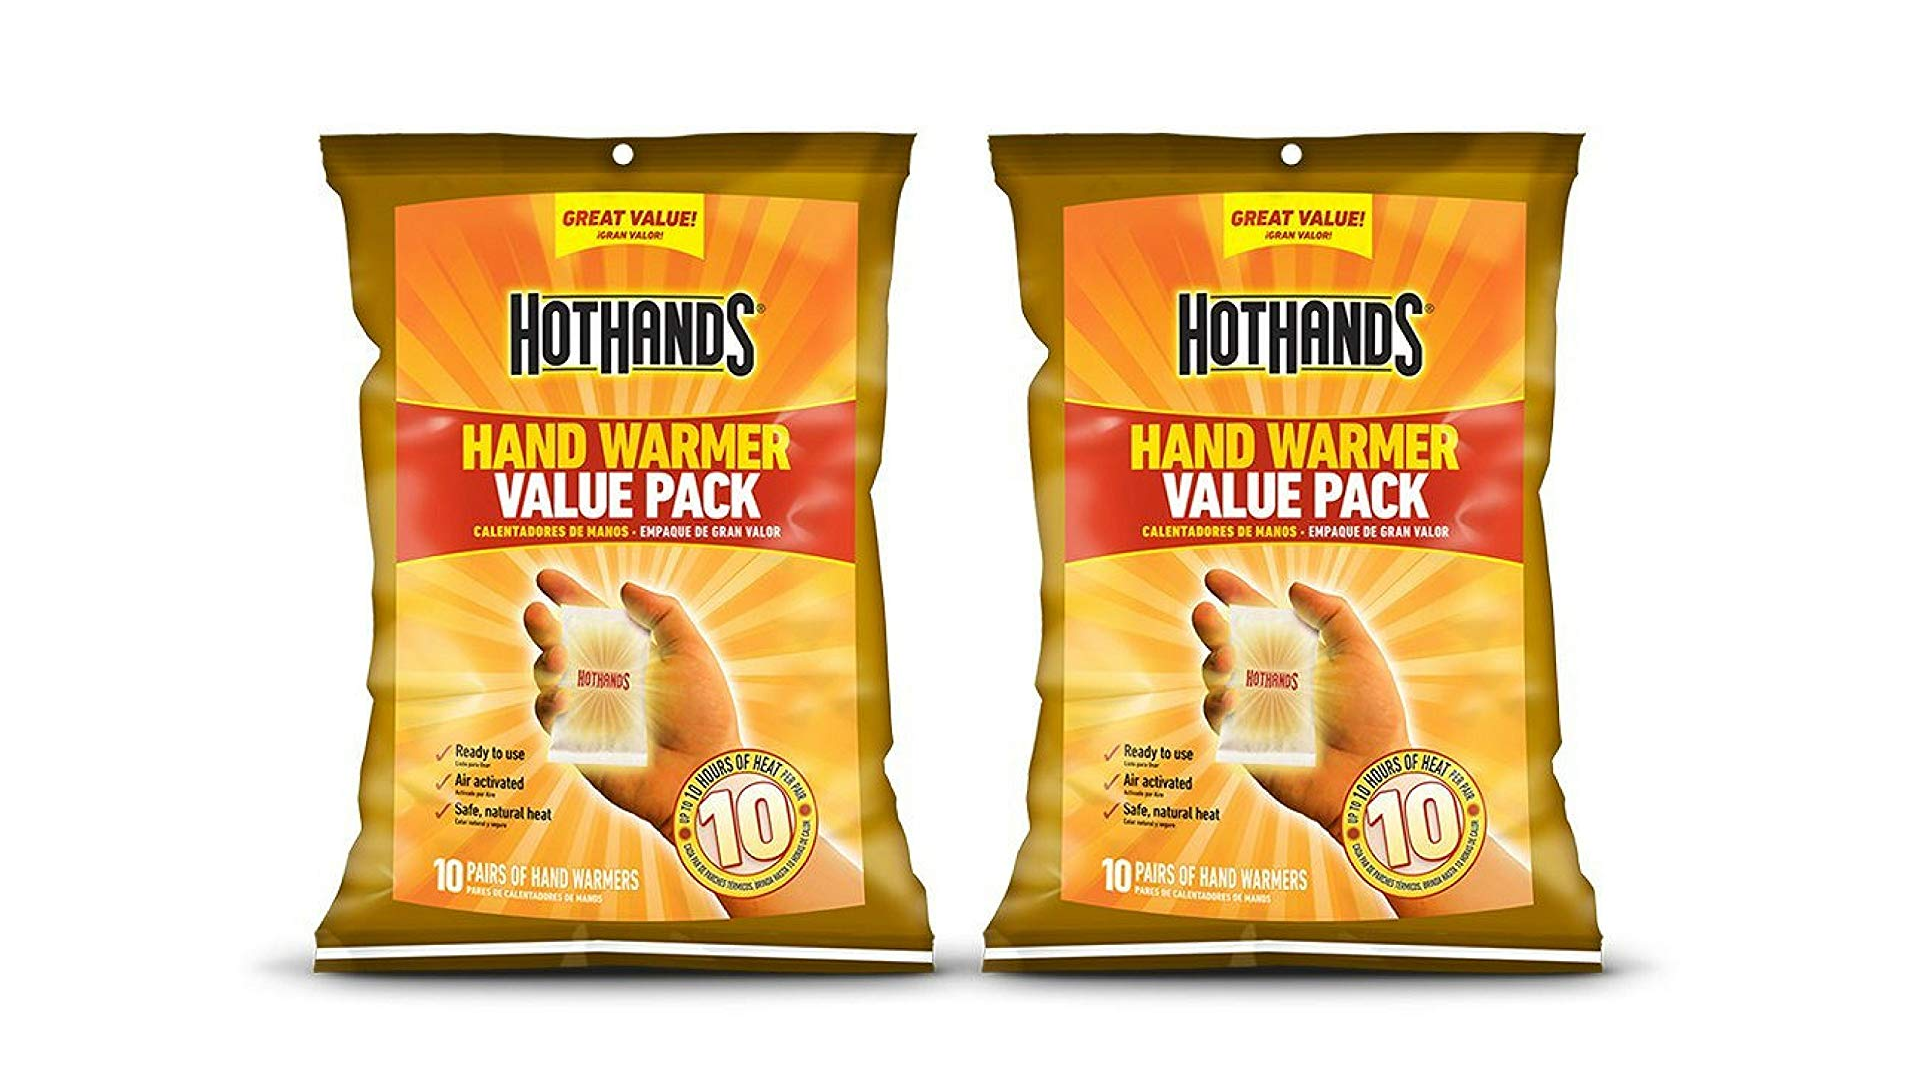 Two packs of HotHands hand warmers.